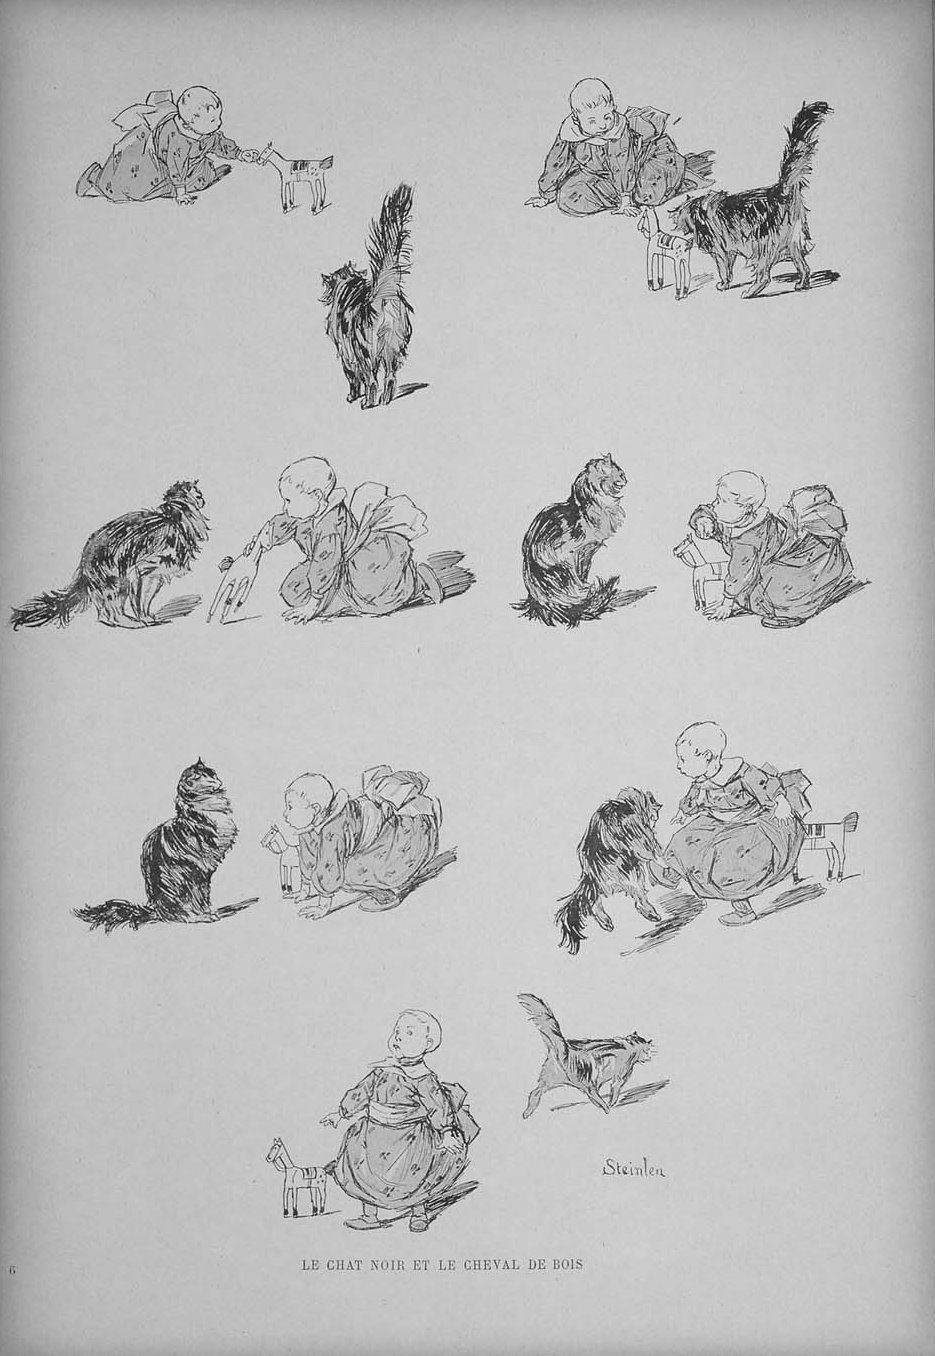 Theophile-Alexander Steinlen. Cats: pictures without words. A living cat or a wooden horse